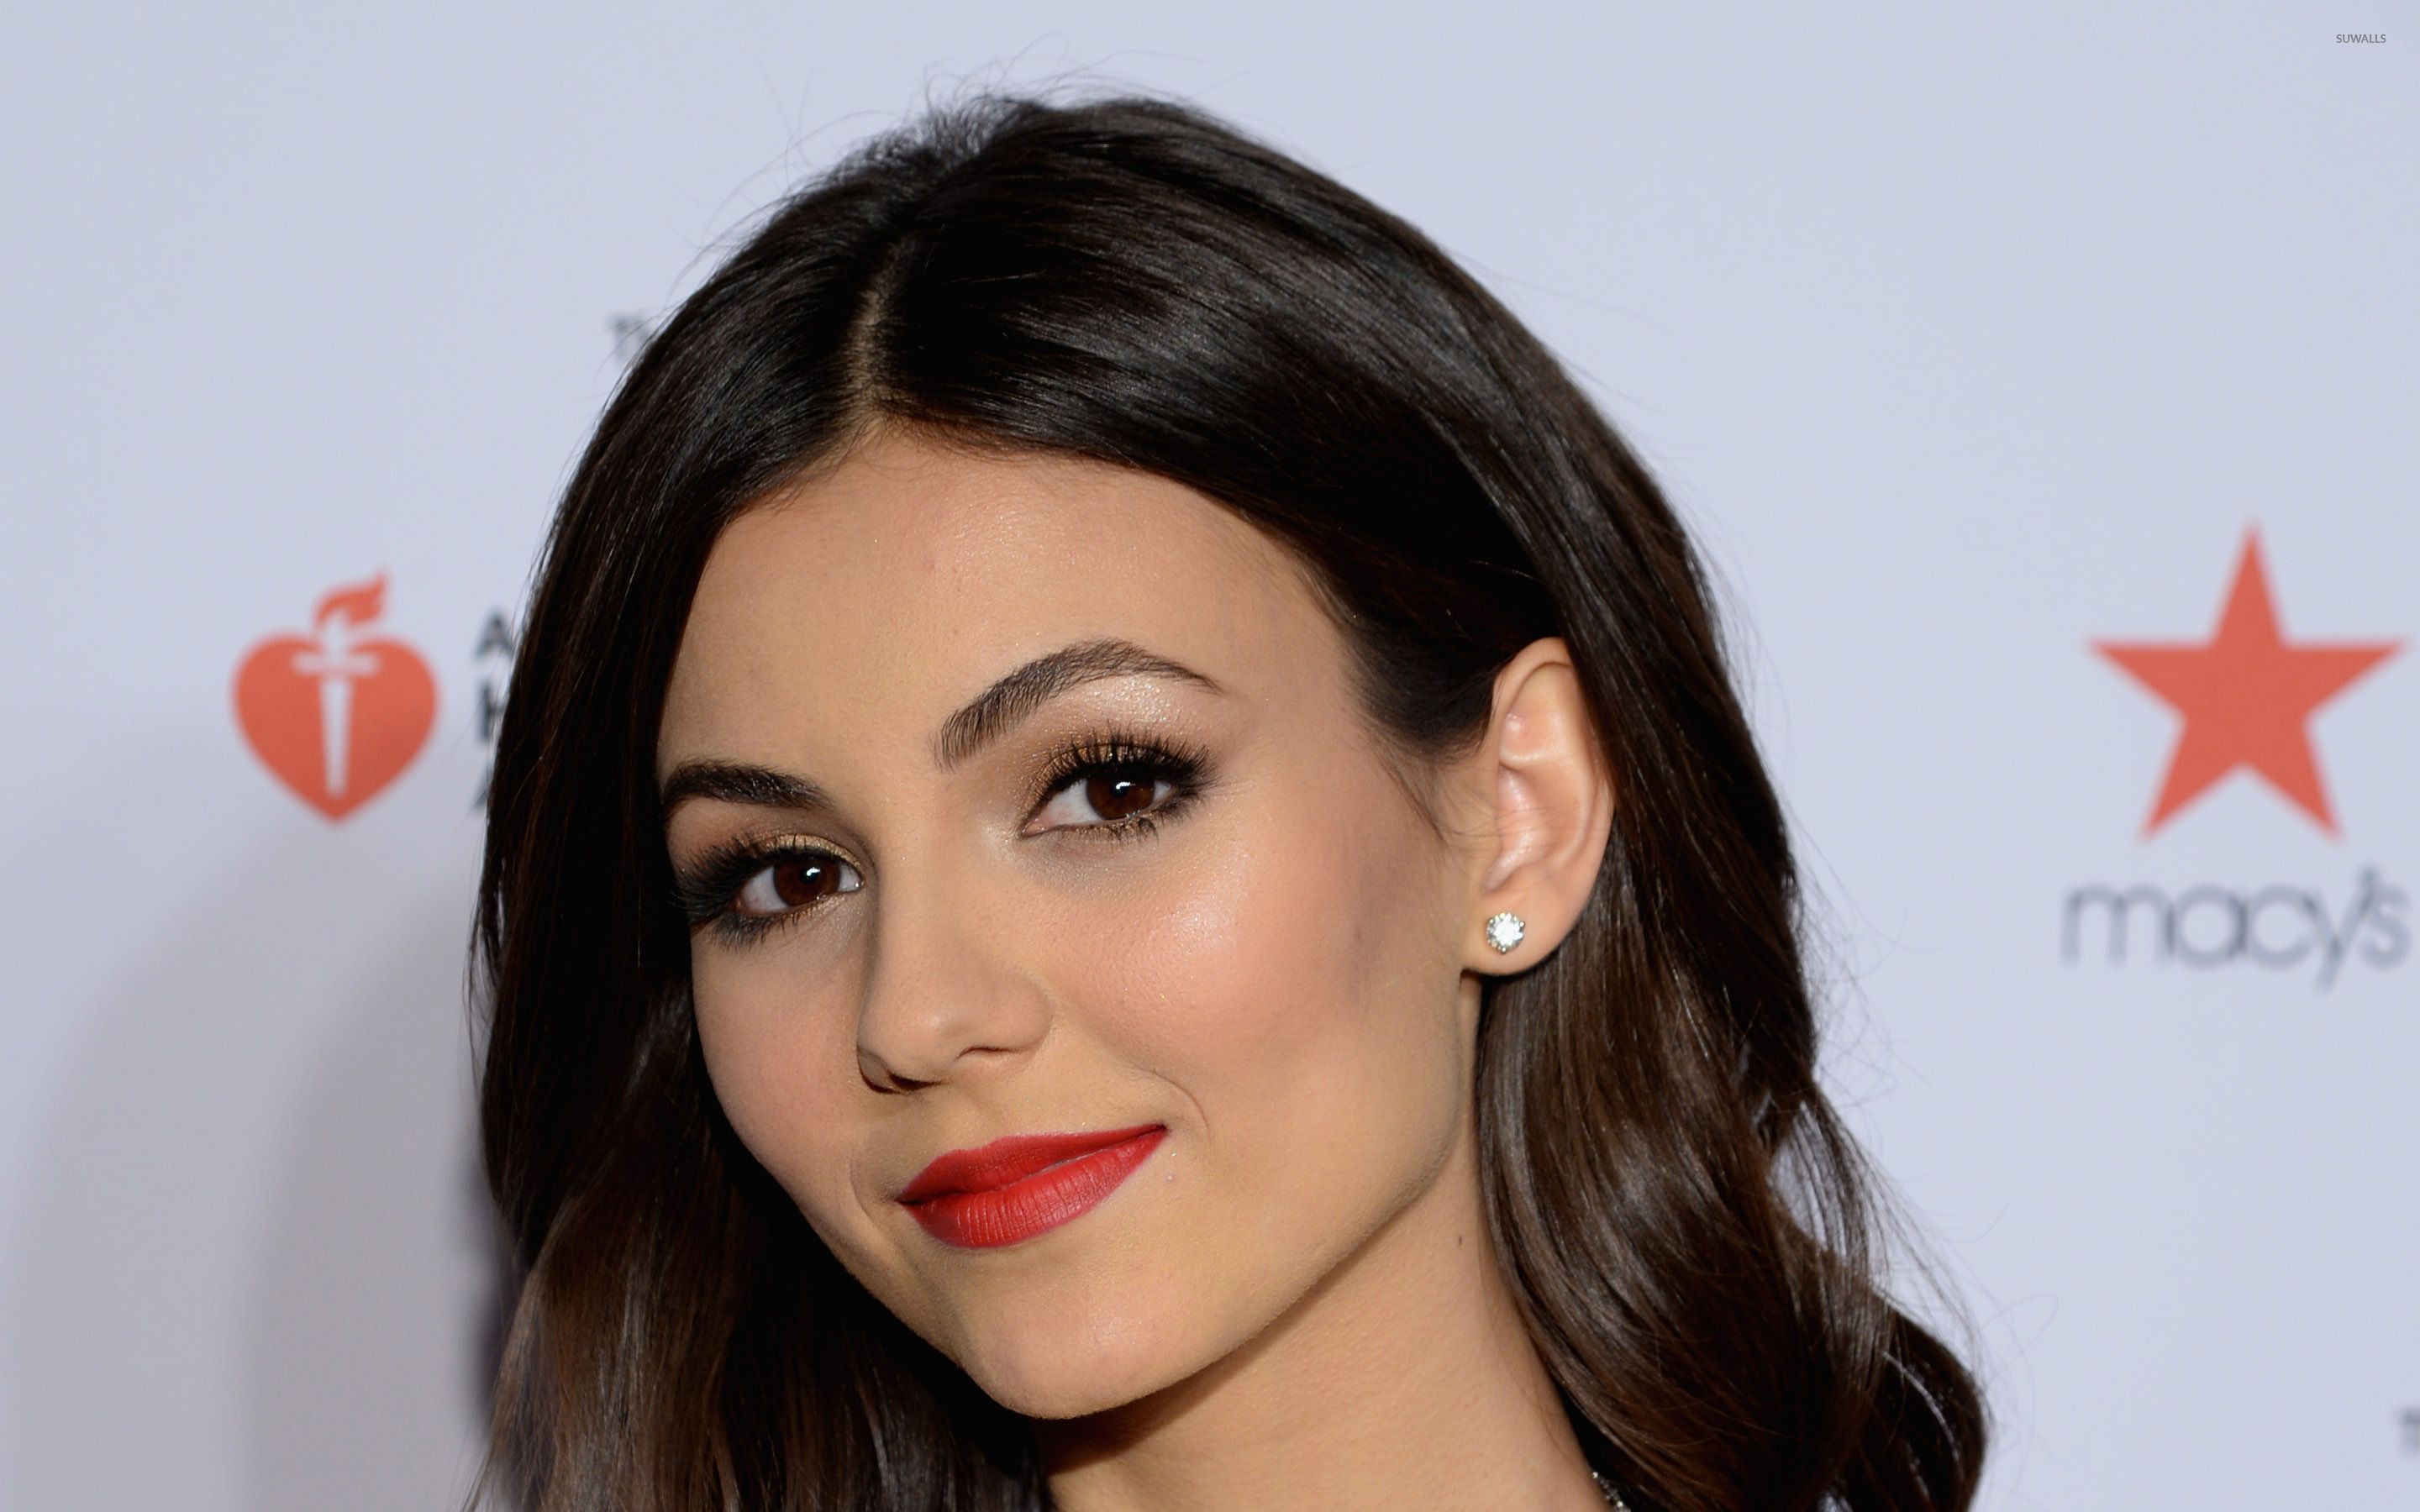 2880x1800 - Victoria Justice Wallpapers 23